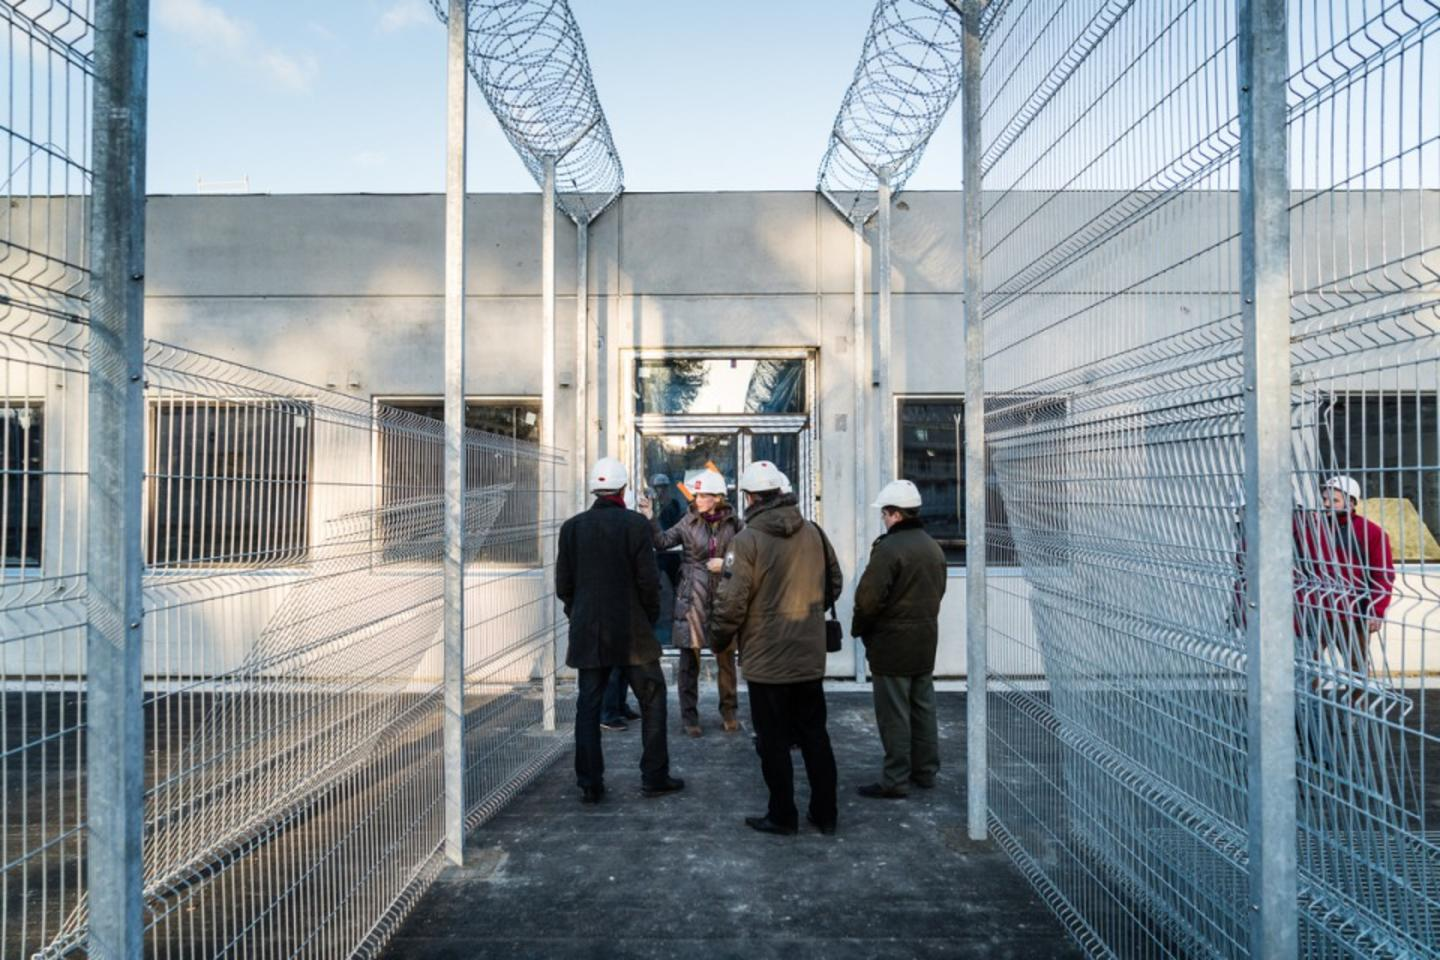 Olaine prison in Latvia supported by Norway Grants